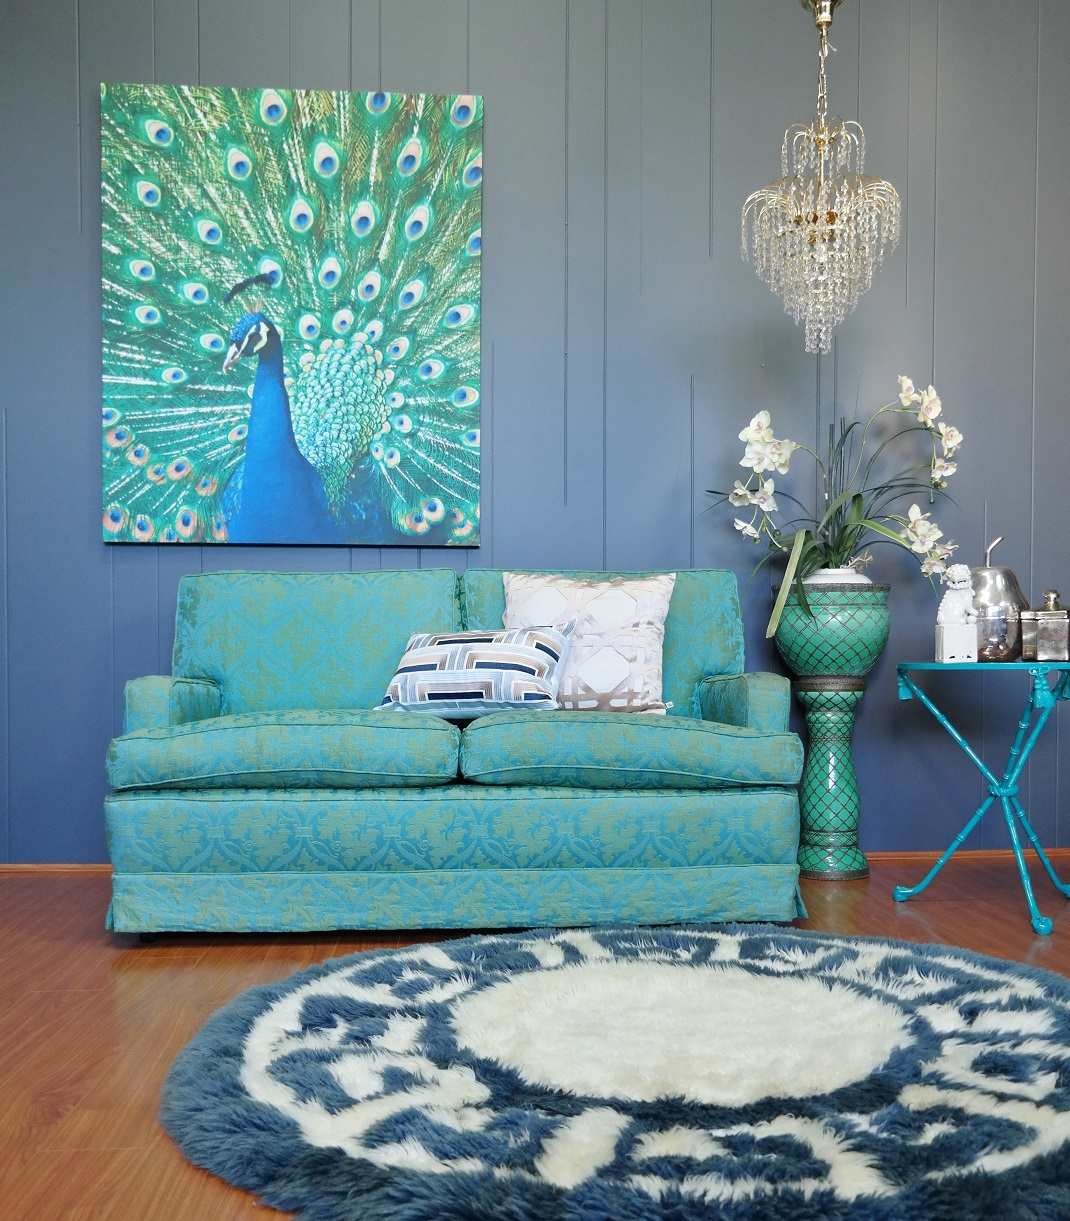 Rug With Turquoise Sofa: How To Enrich Interior With Royal Turquoise Velvet Fabric